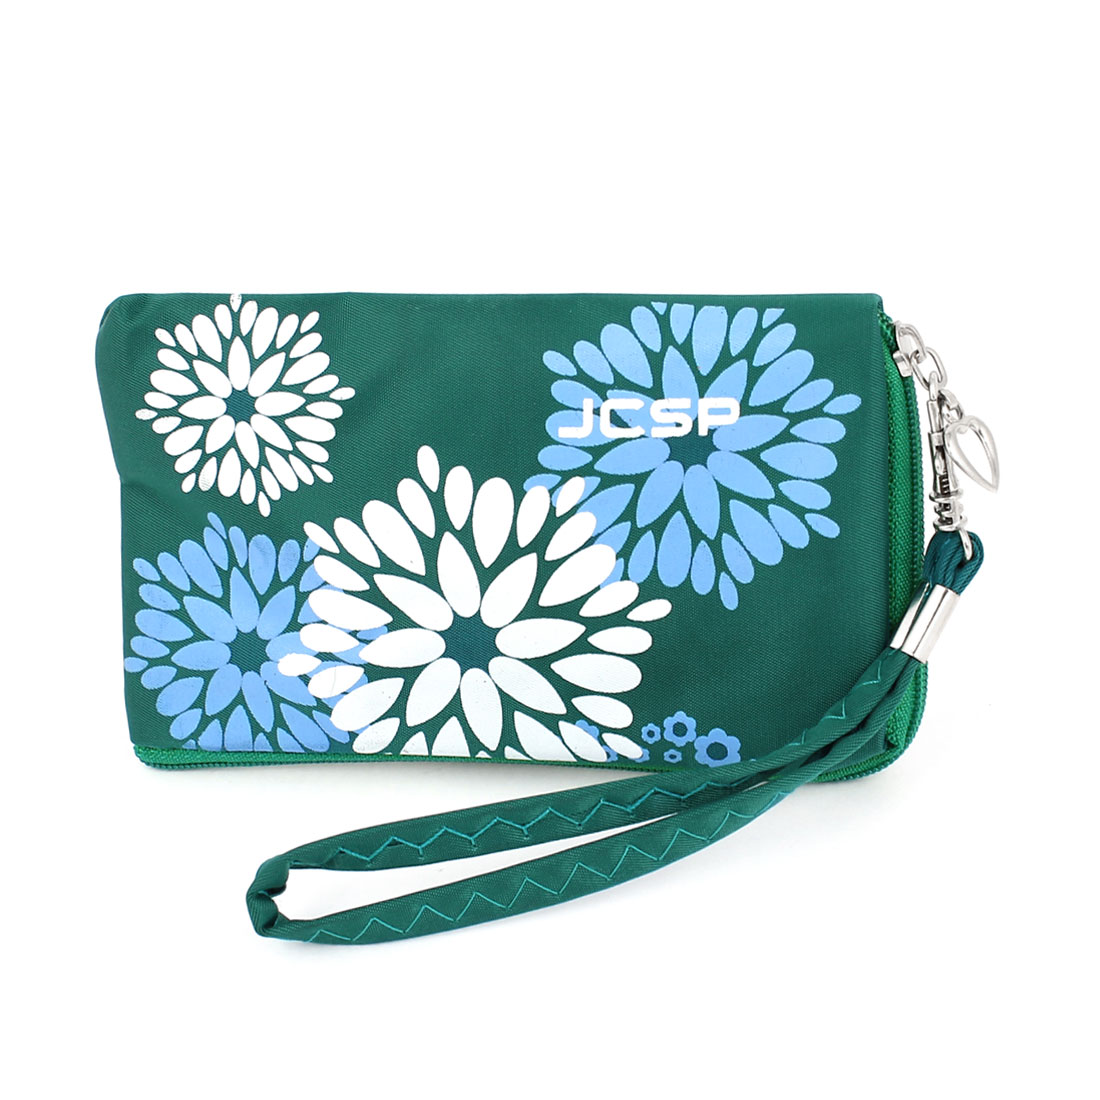 Unique Bargains Green Flower Pattern Purse Bag Holder for Mobile Phone Keys Mp3 Mp4